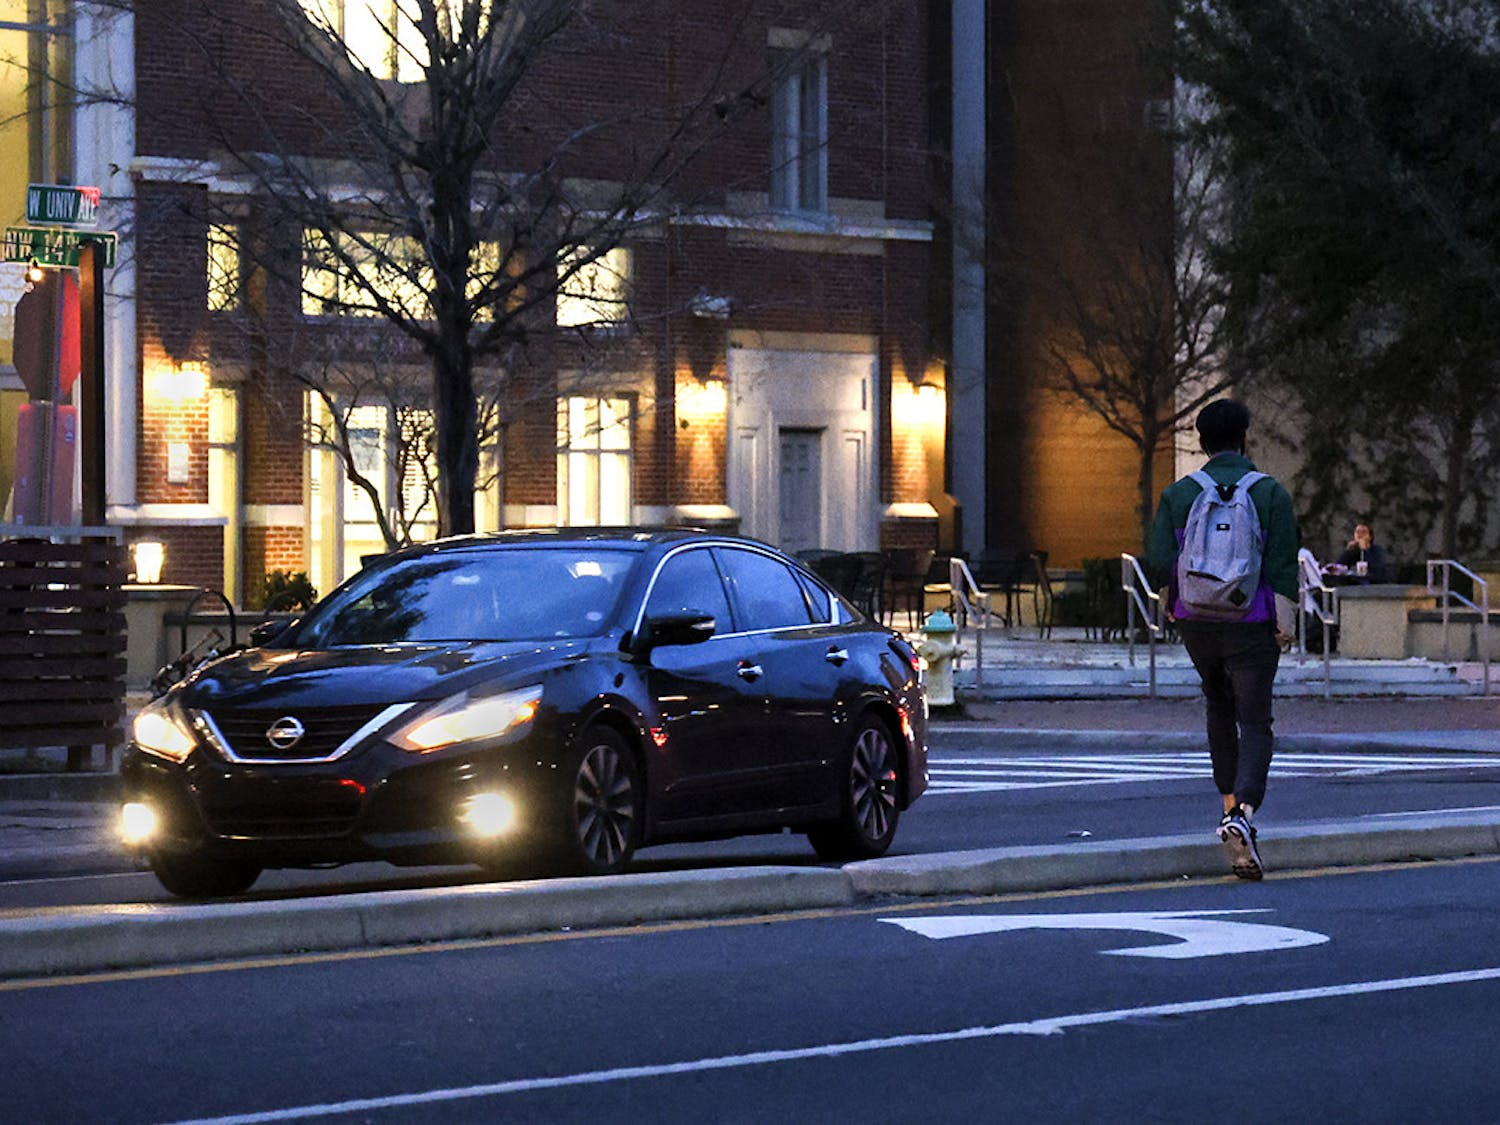 A pedestrian jaywalks across West University Avenue on Wednesday, Feb. 17, 2021.